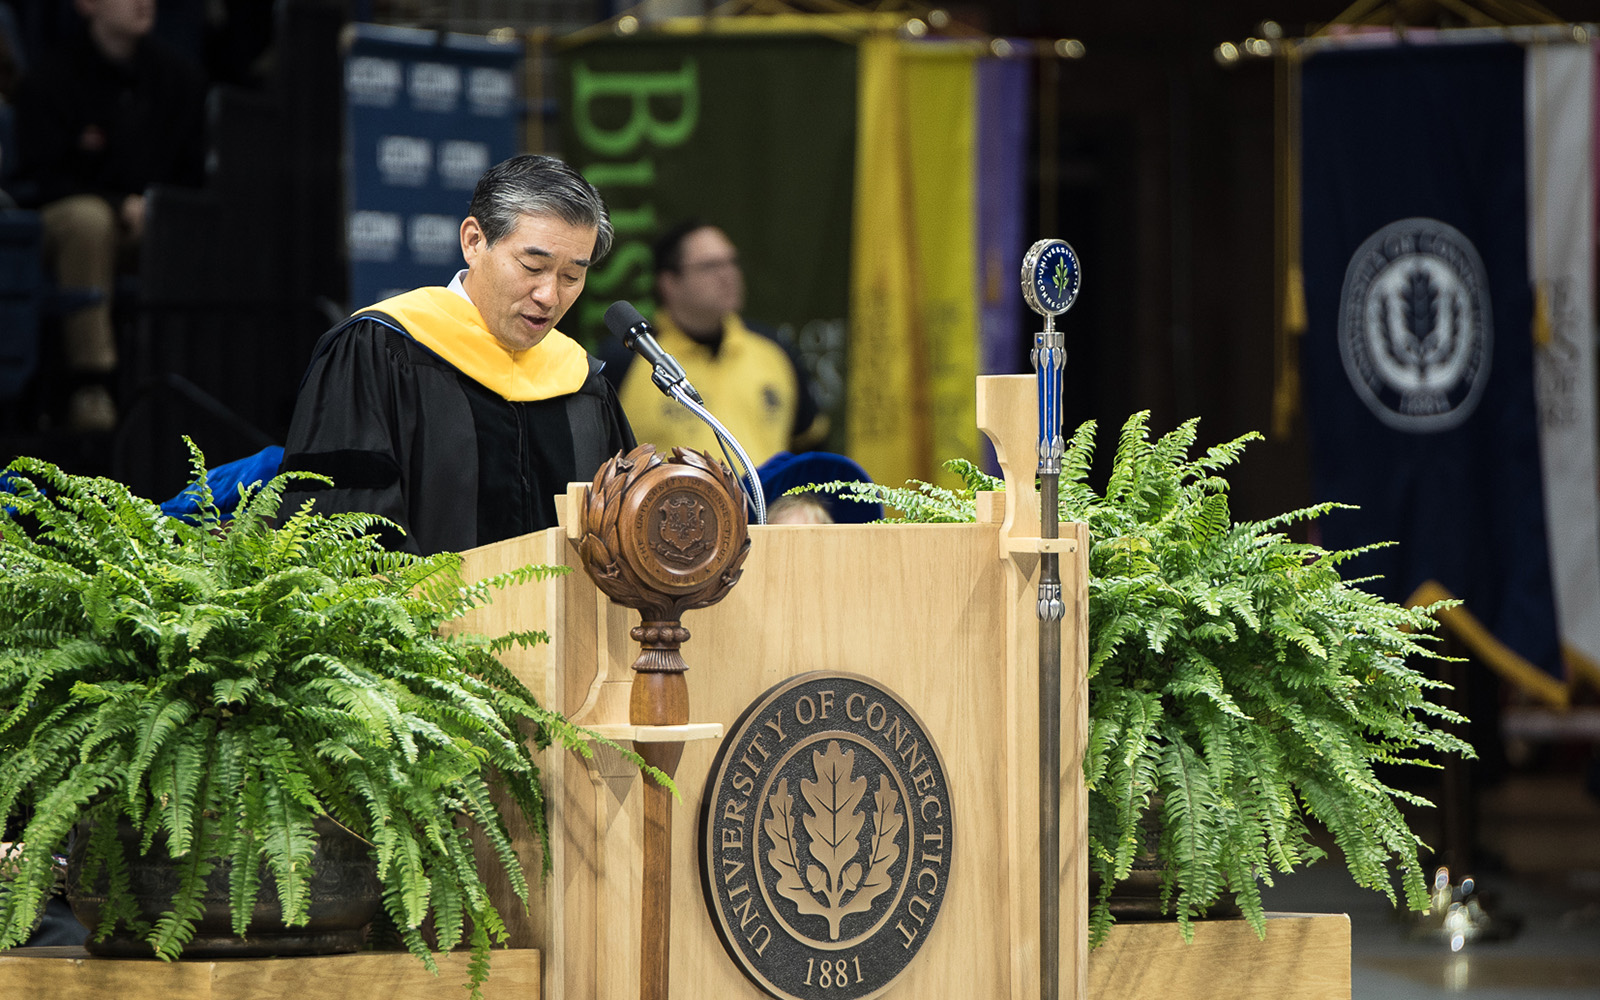 New York Life President John Y. Kim '87 MBA Delivers Light-hearted, Advice-Filled Commencement Speech